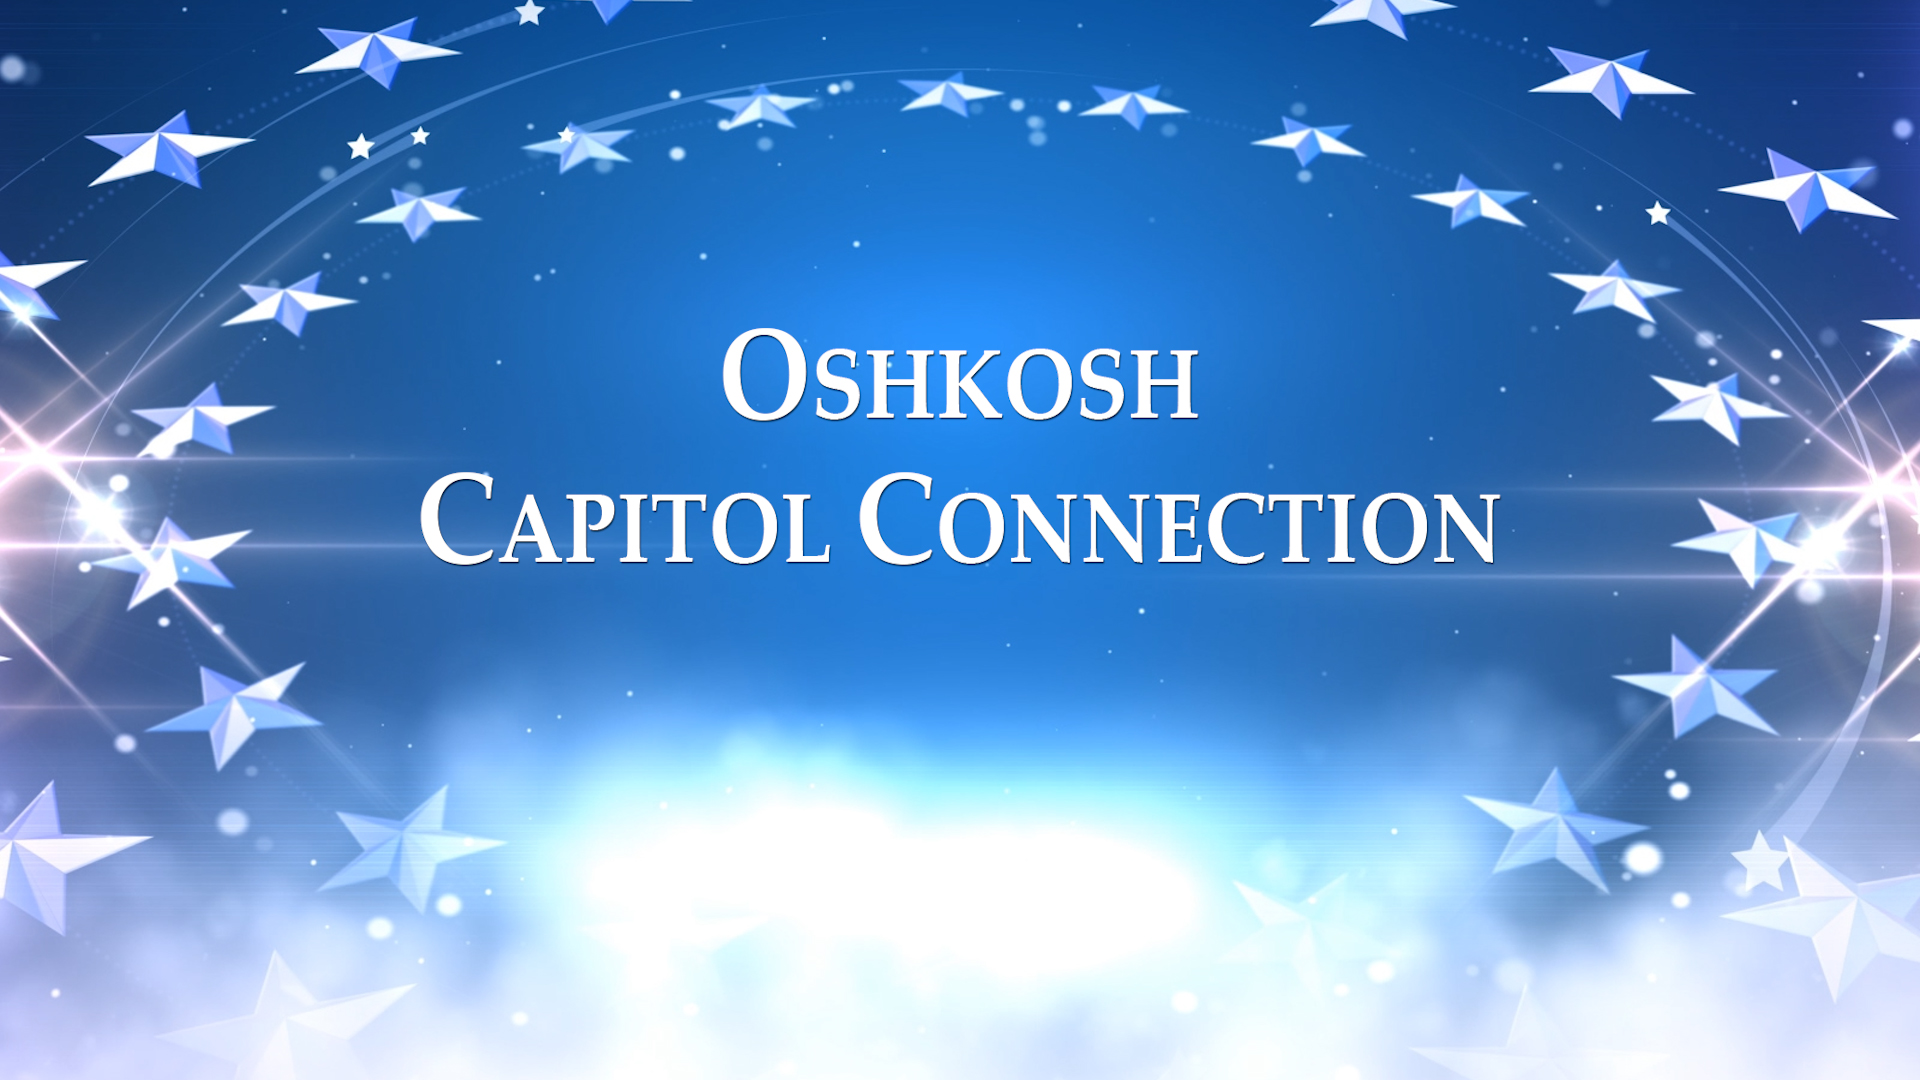 Oshkosh Capitol Connection